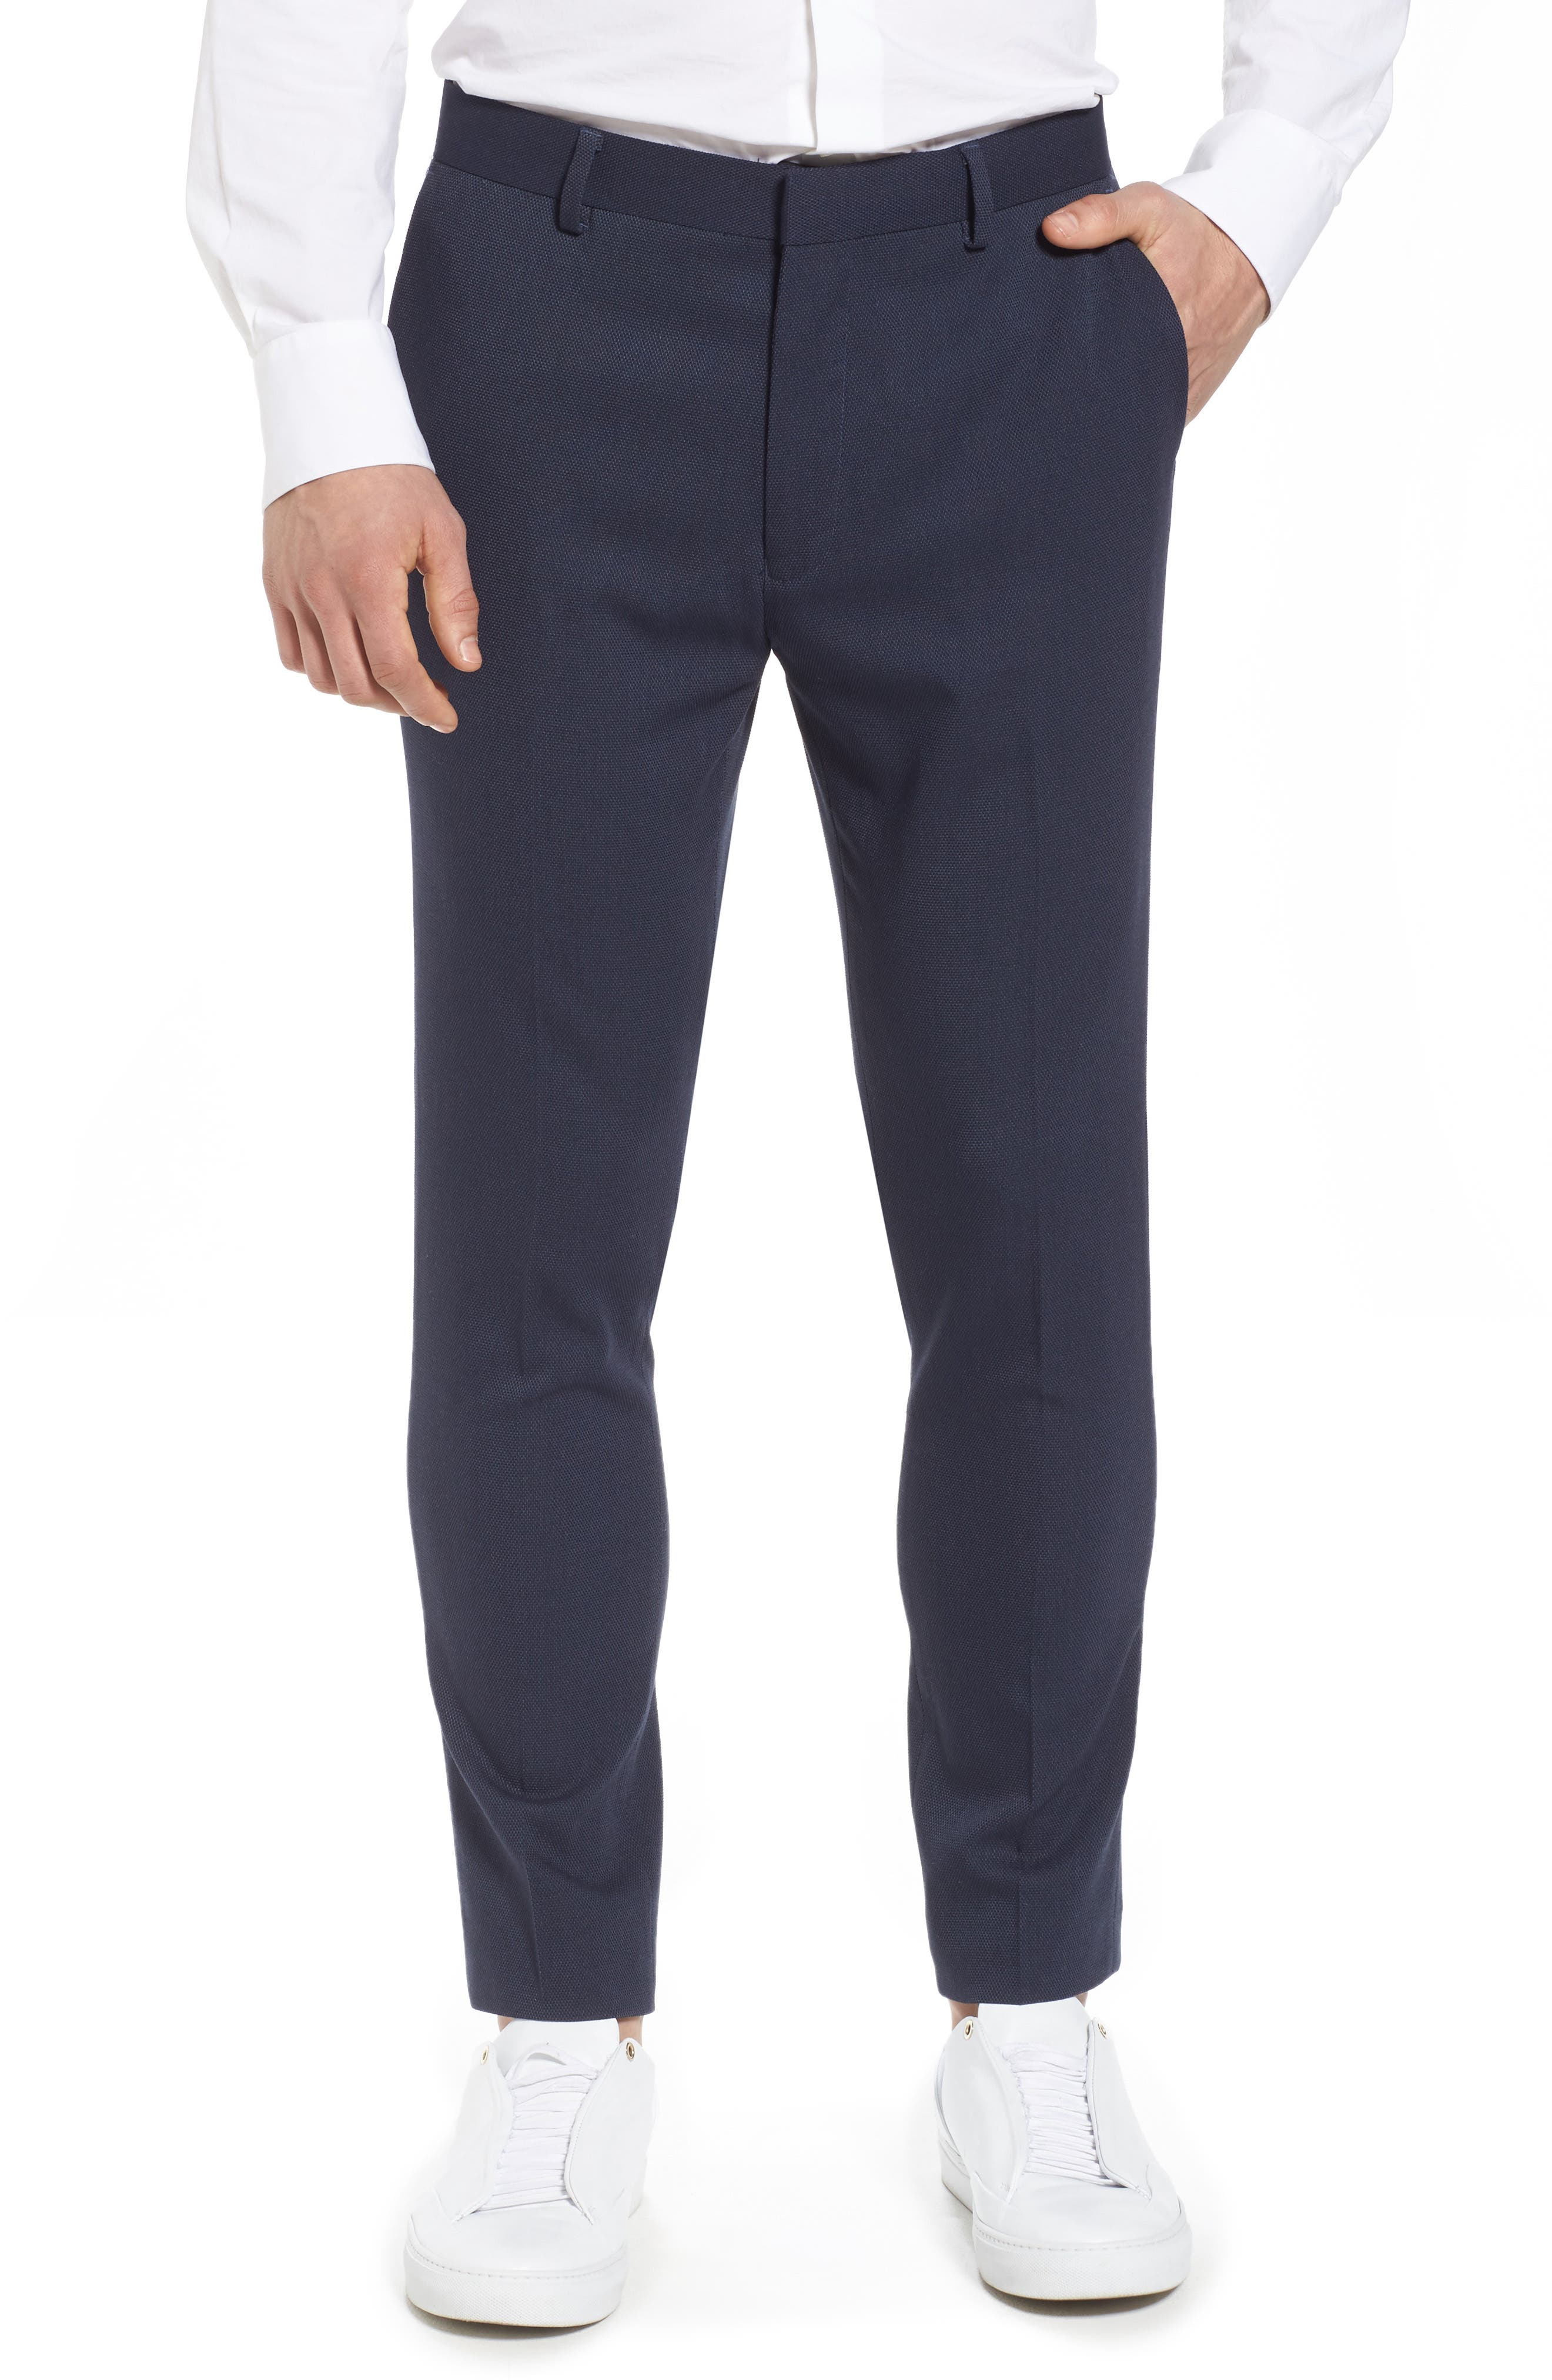 Skinny Fit Como Trousers,                             Main thumbnail 1, color,                             420